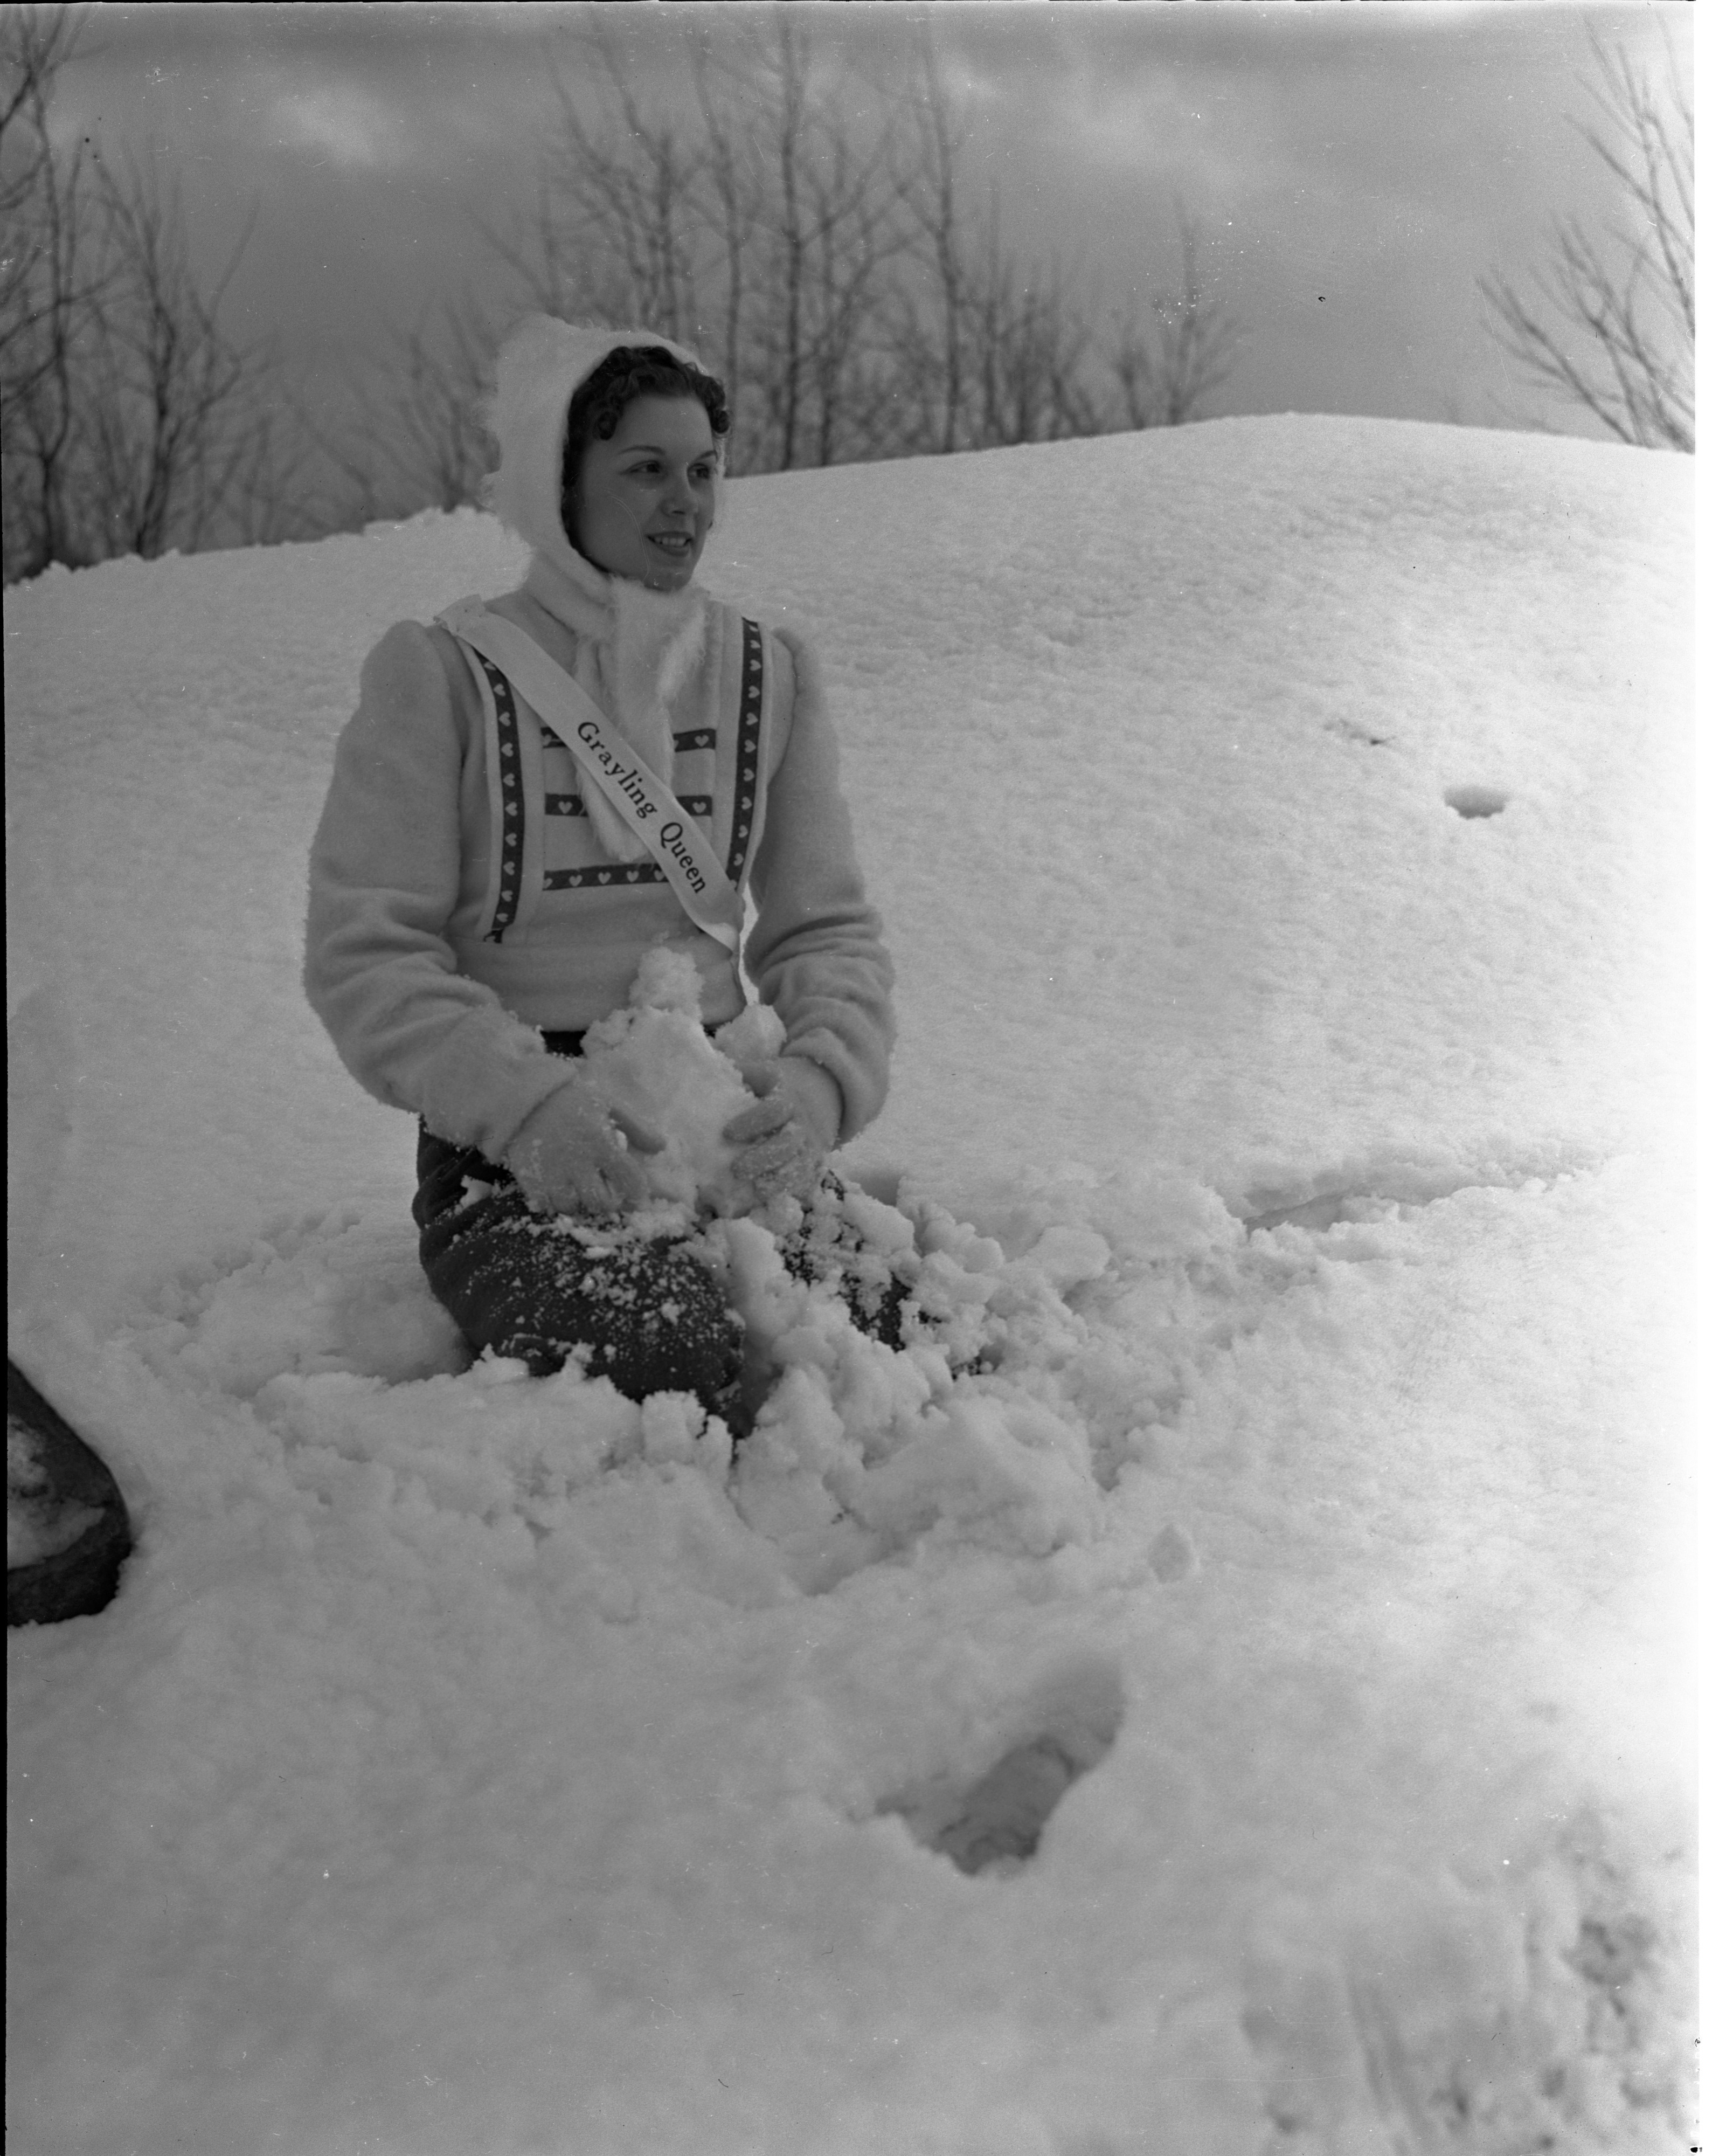 Grayling Snow Queen Pauline Merrill Sits In The Snow, January 1940 image